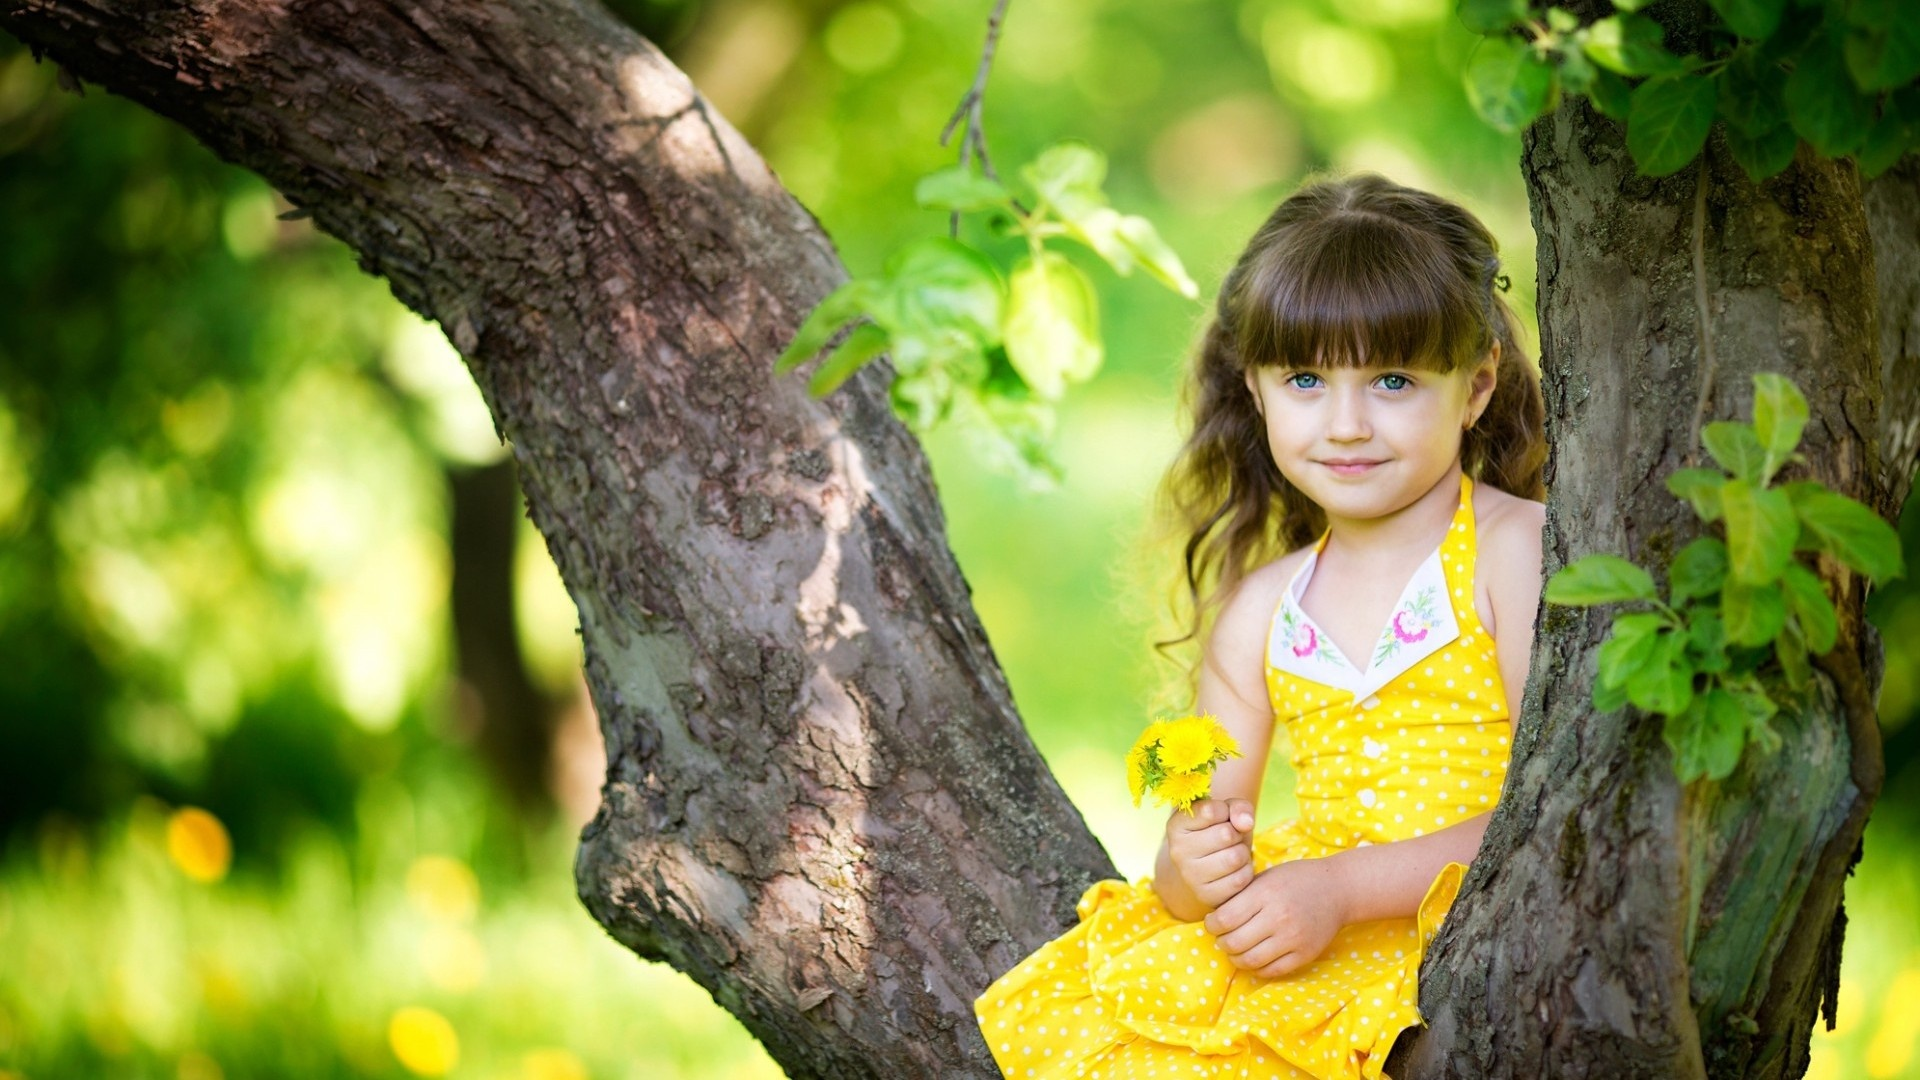 Collection of Cute Baby Girl Wallpaper on HDWallpapers